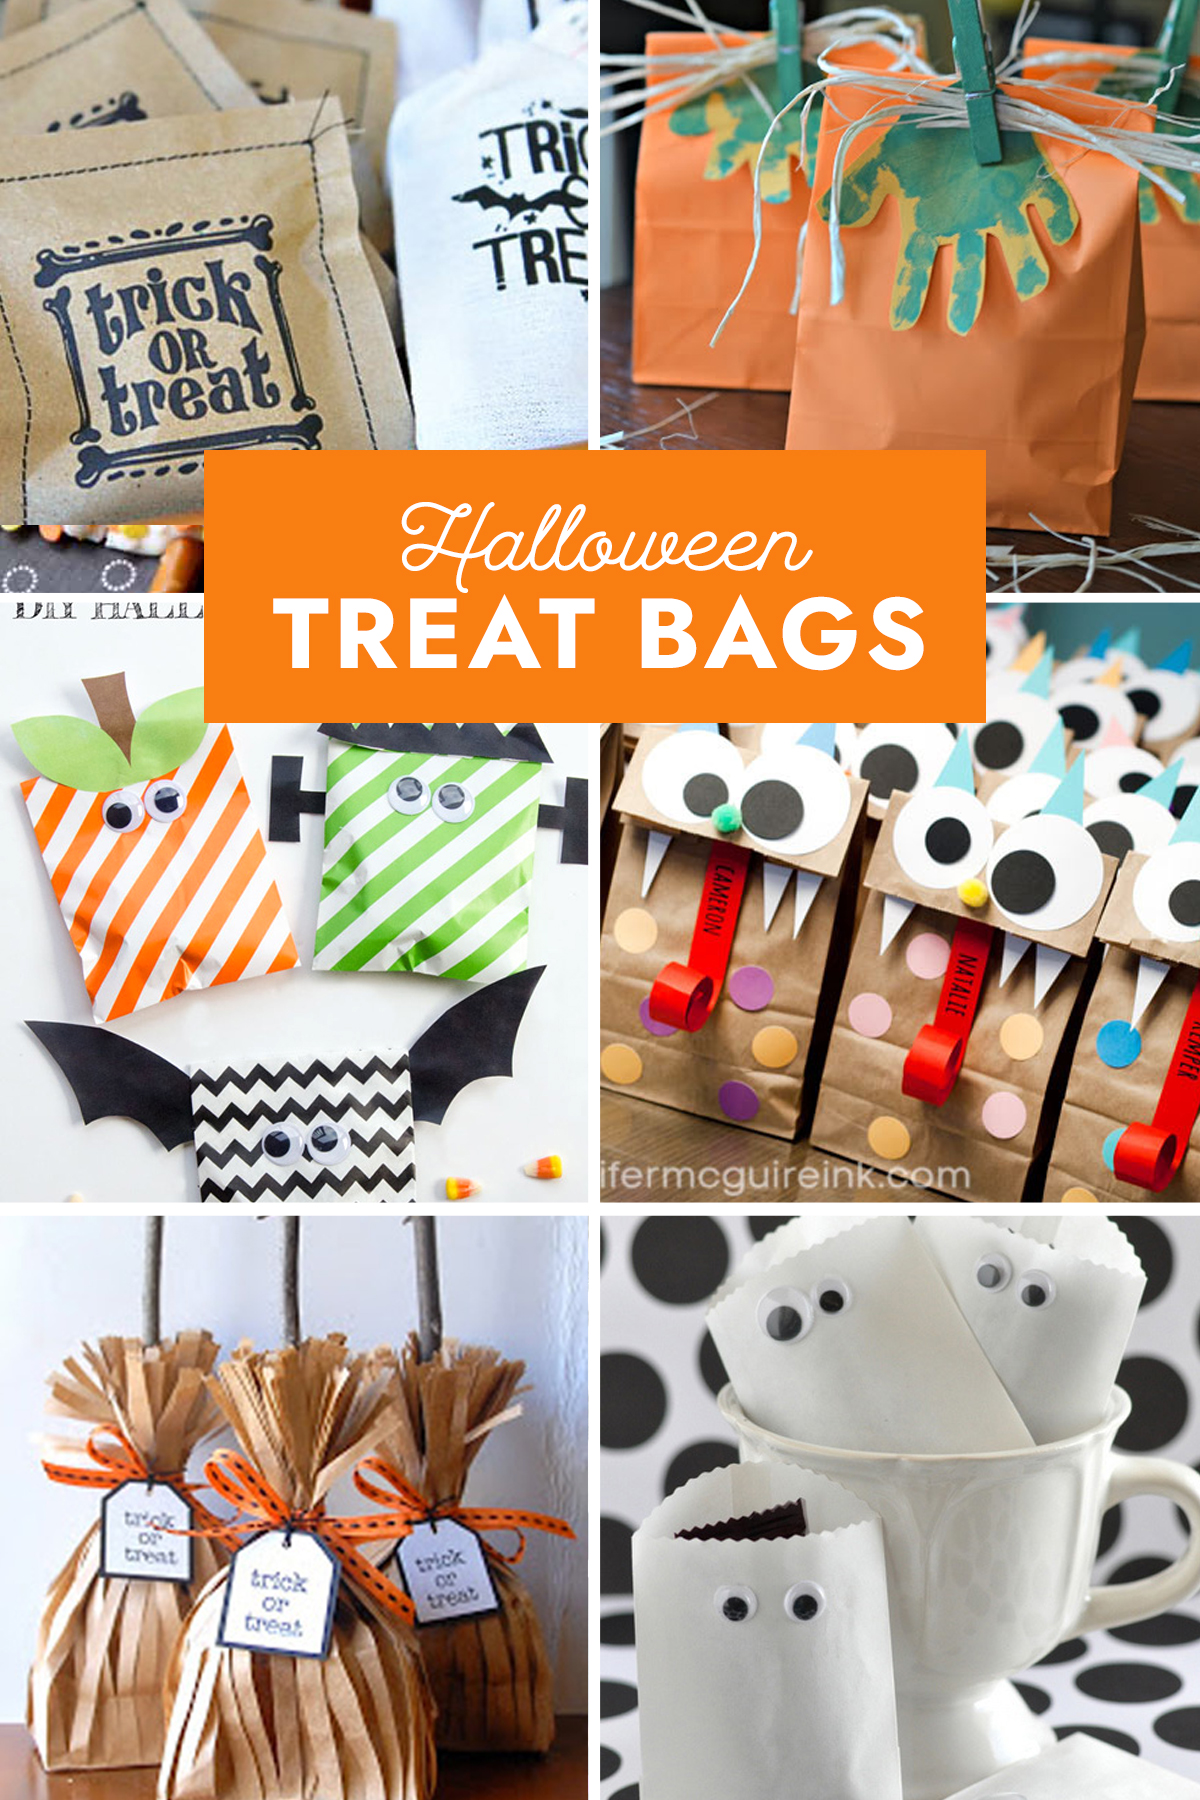 Collage of Halloween treat bags